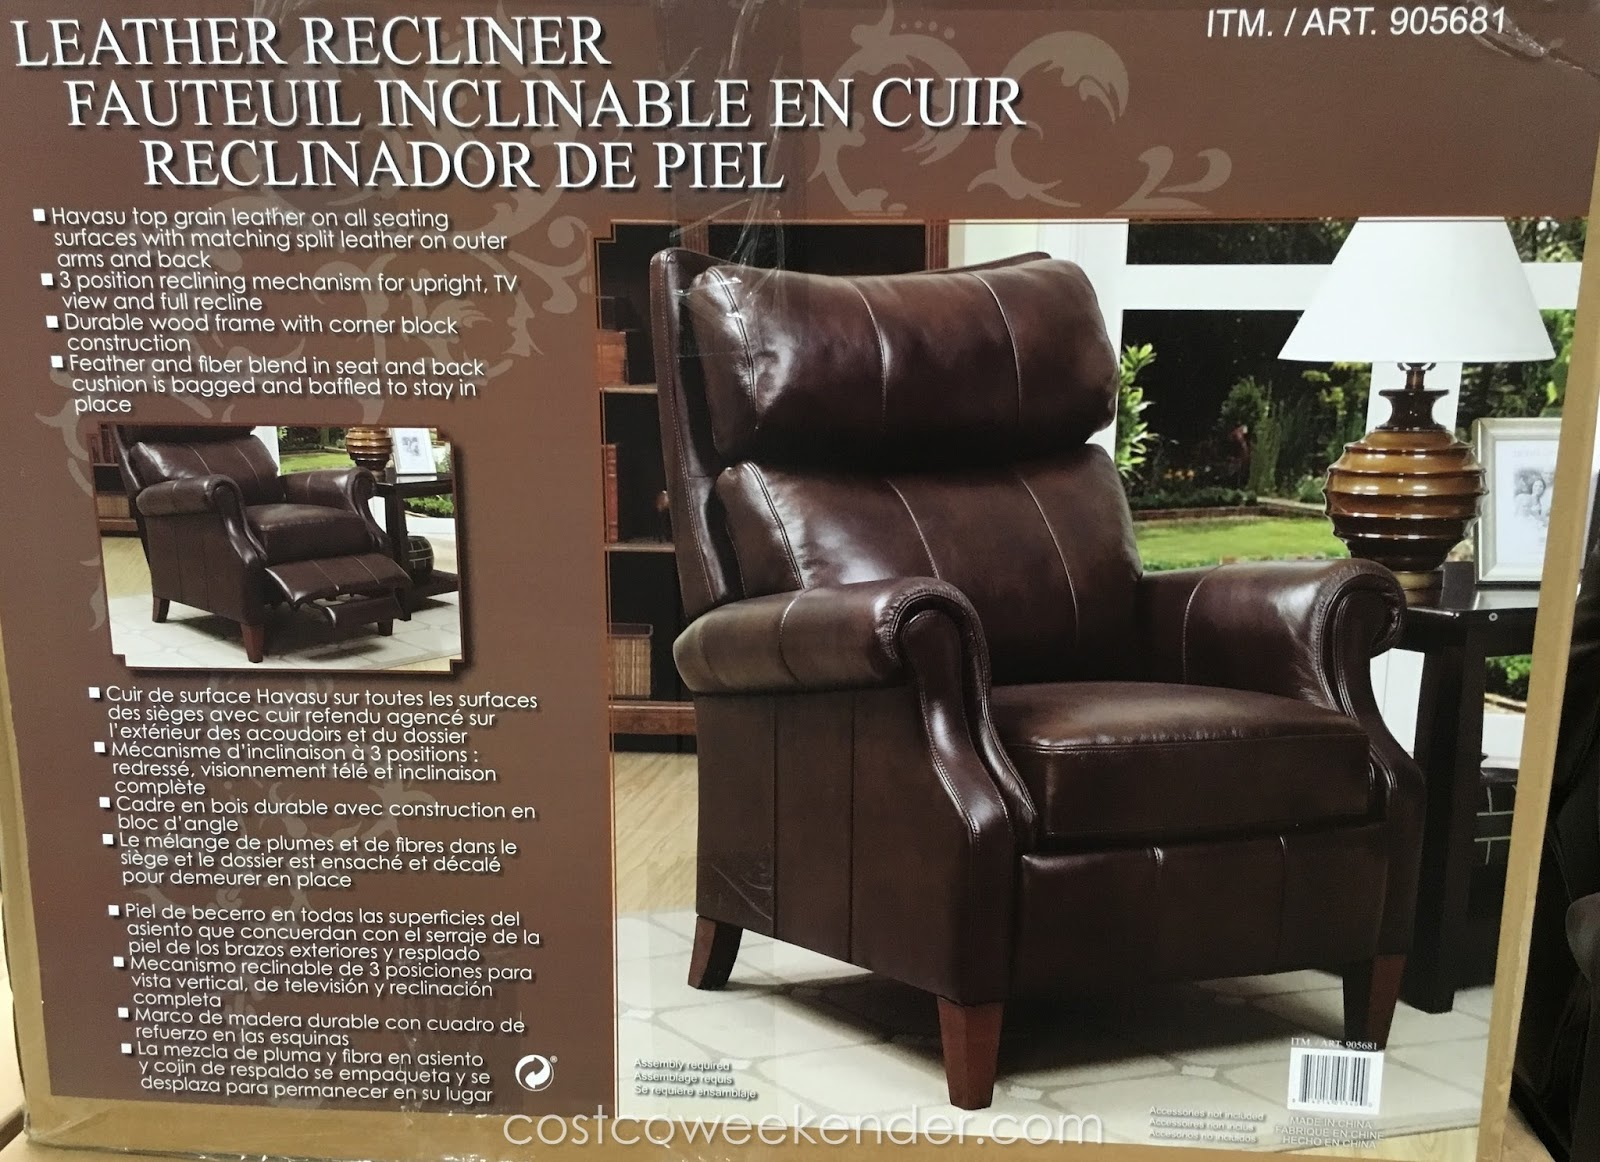 synergy recliner chair rustic accent chairs home furnishings leather costco weekender relax in comfort and style on the